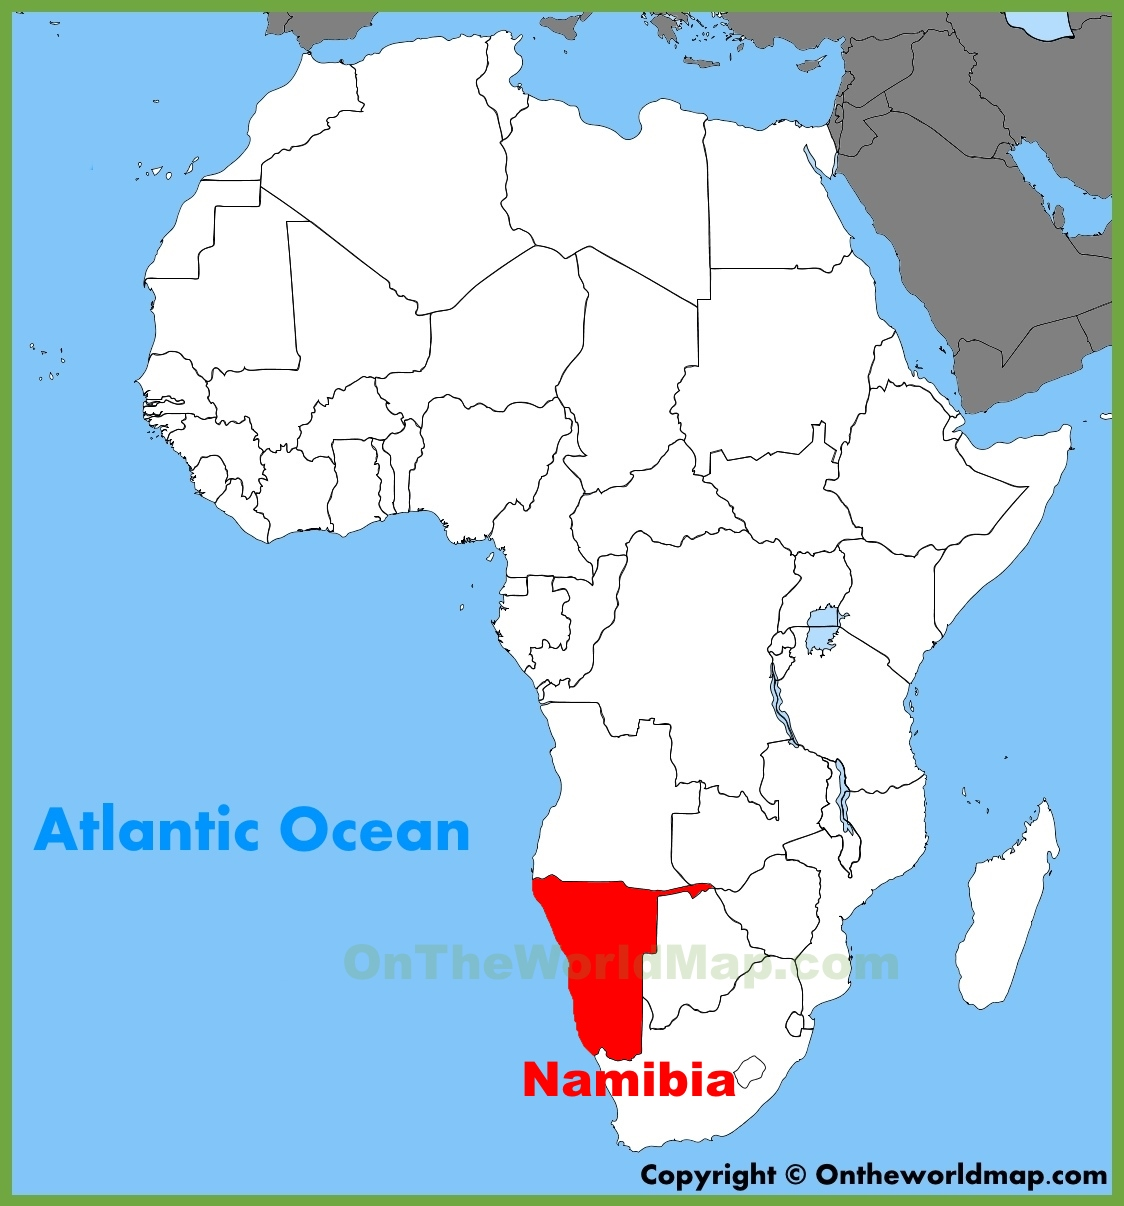 Namibia On Africa Map.Namibia Location On The Africa Map